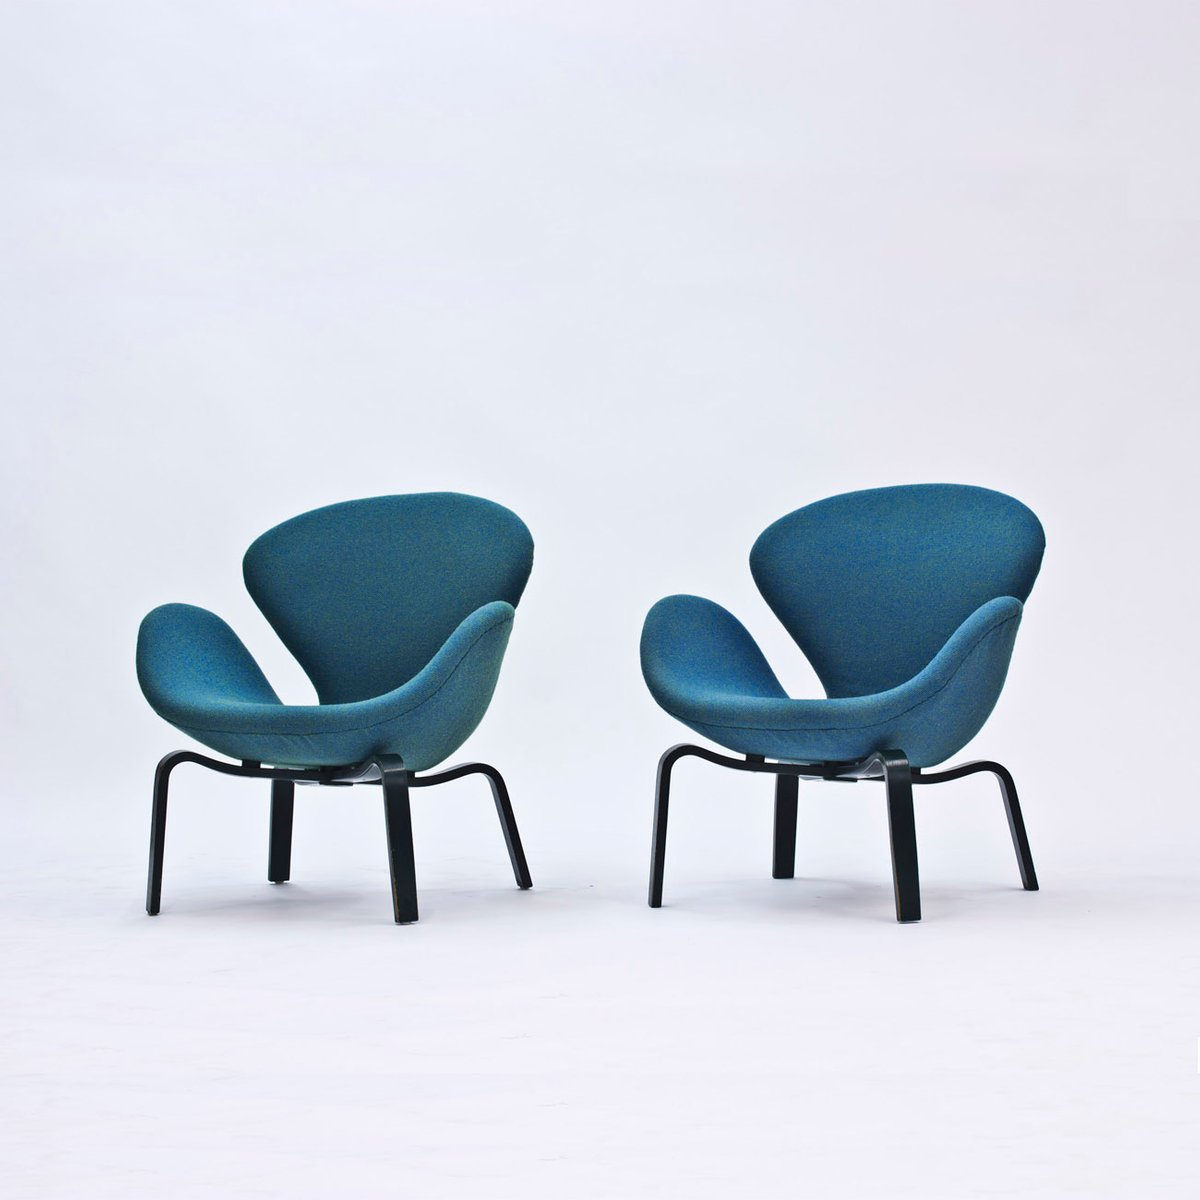 arne jacobsen furniture. Swan Lounge Chairs By Arne Jacobsen For Fritz Hansen, 1969, Set Of 2 Furniture P